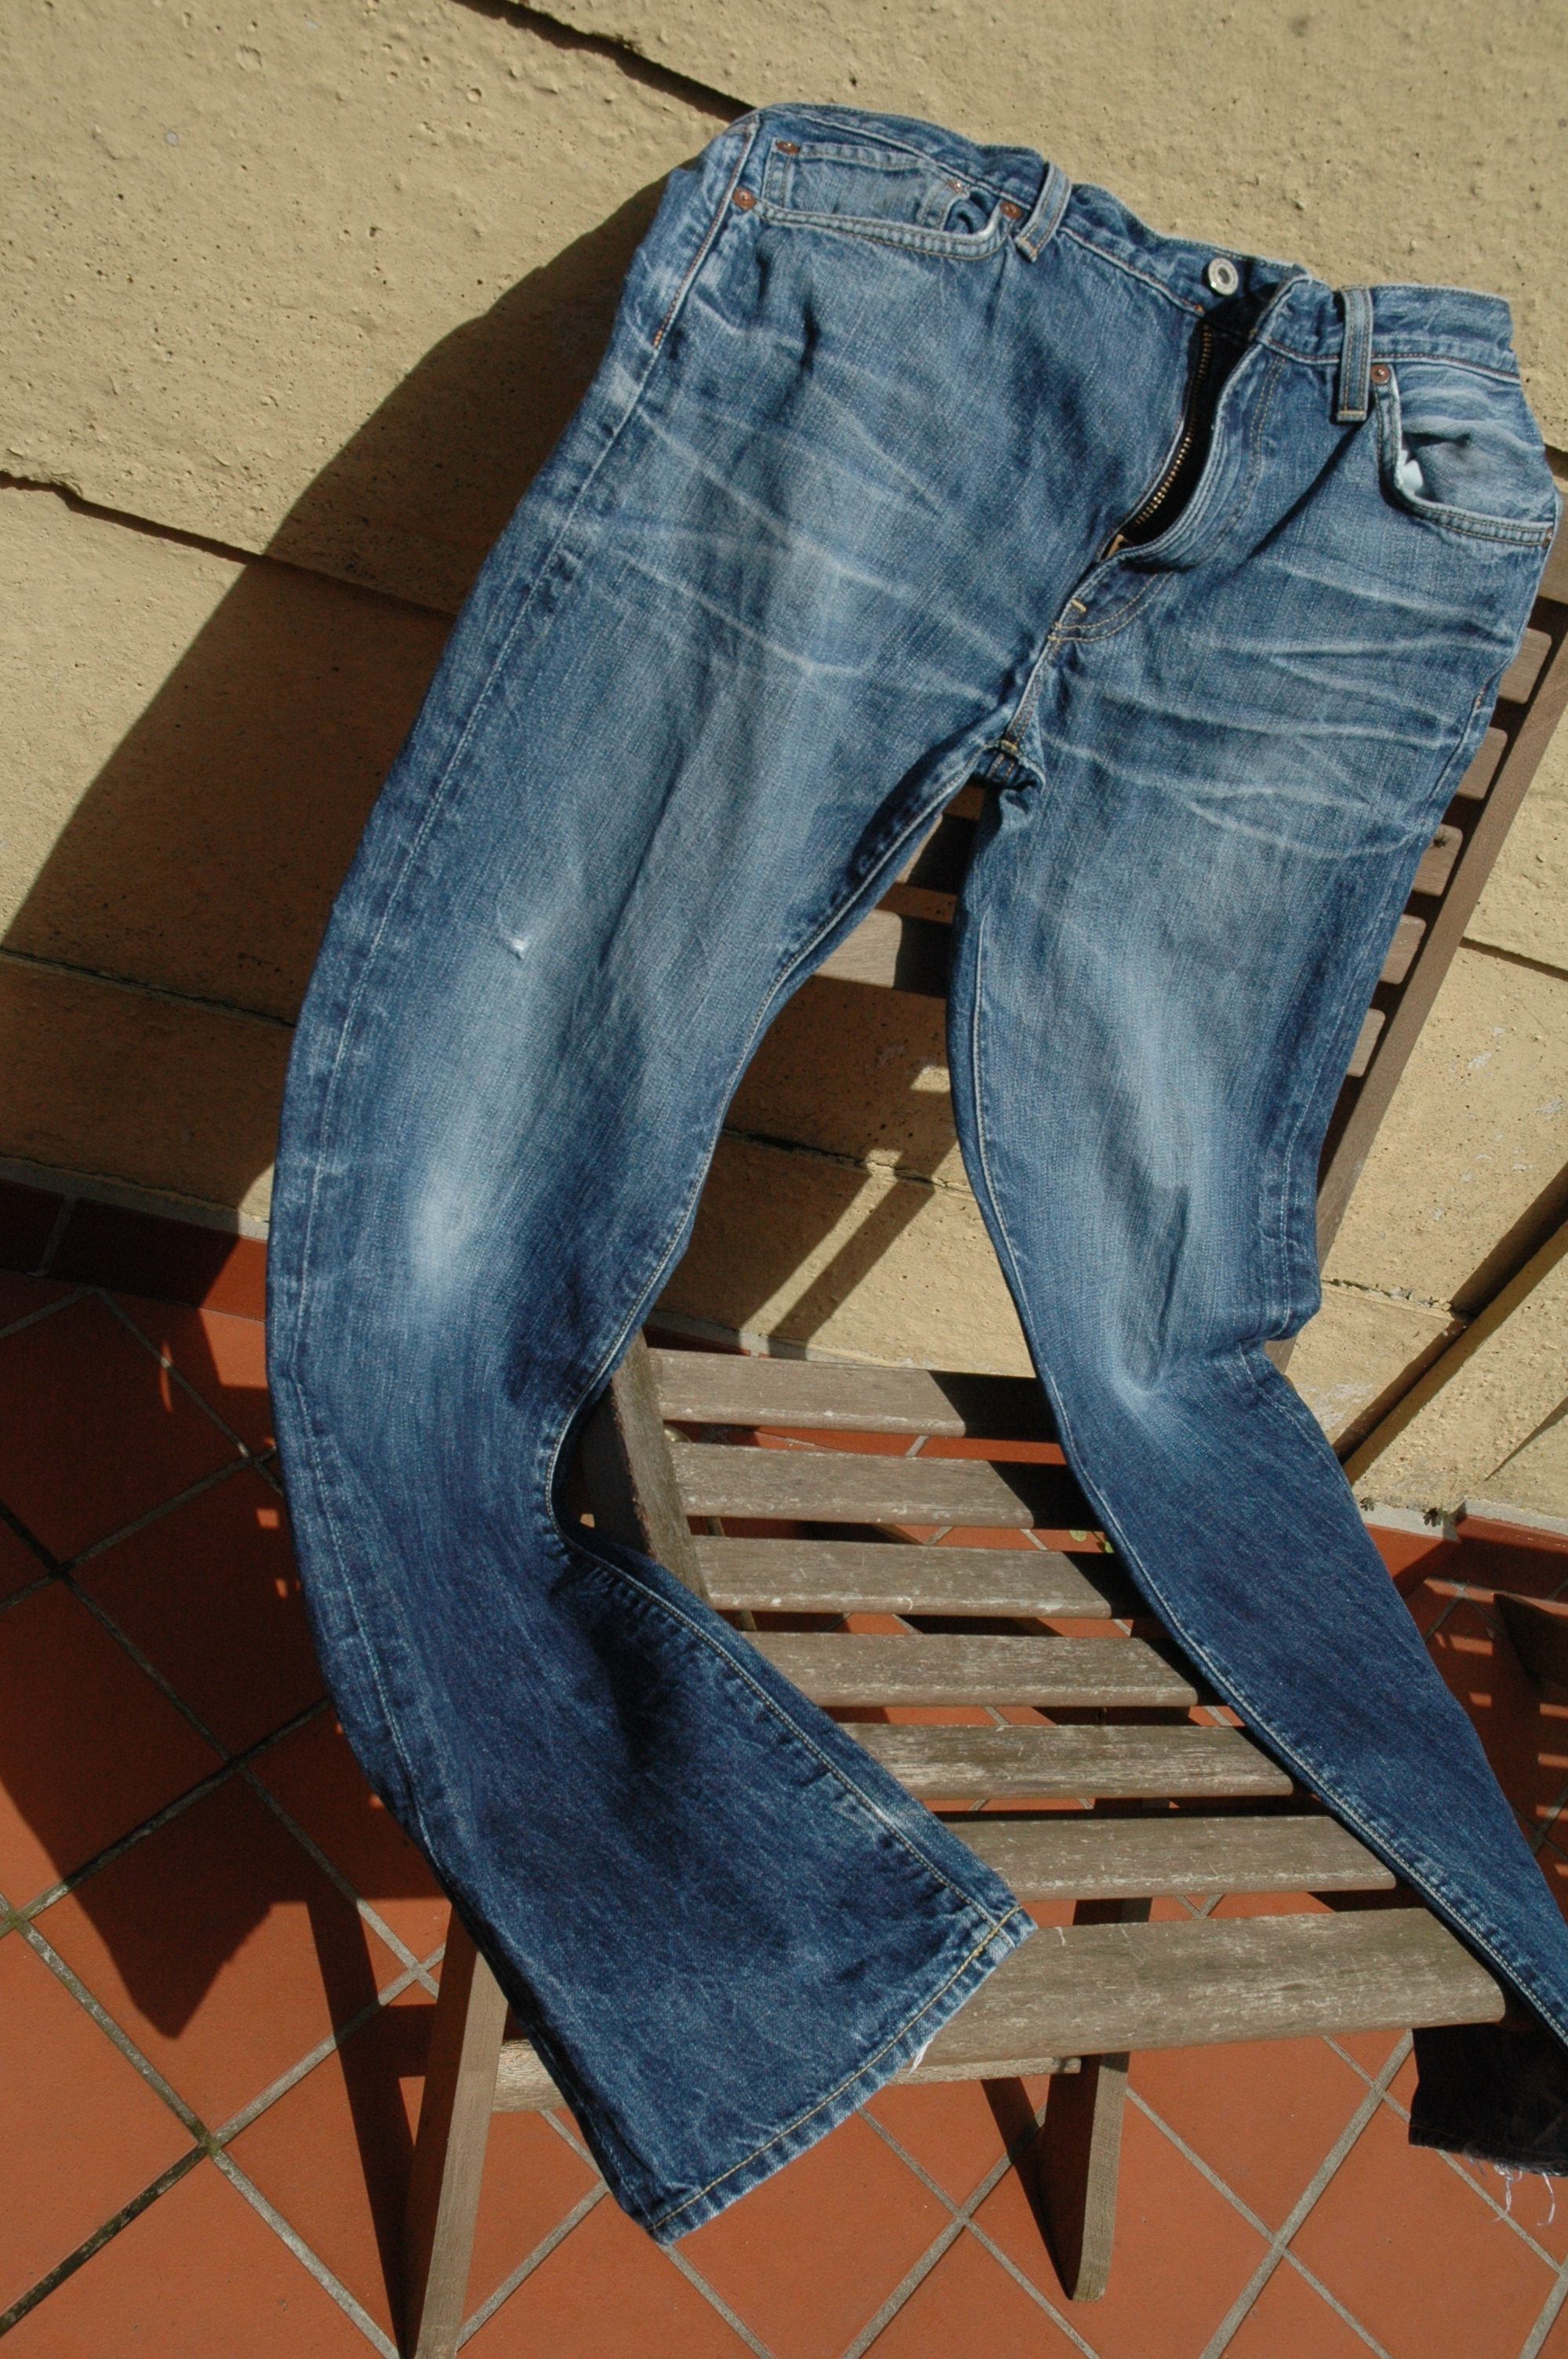 Old pair of jeans